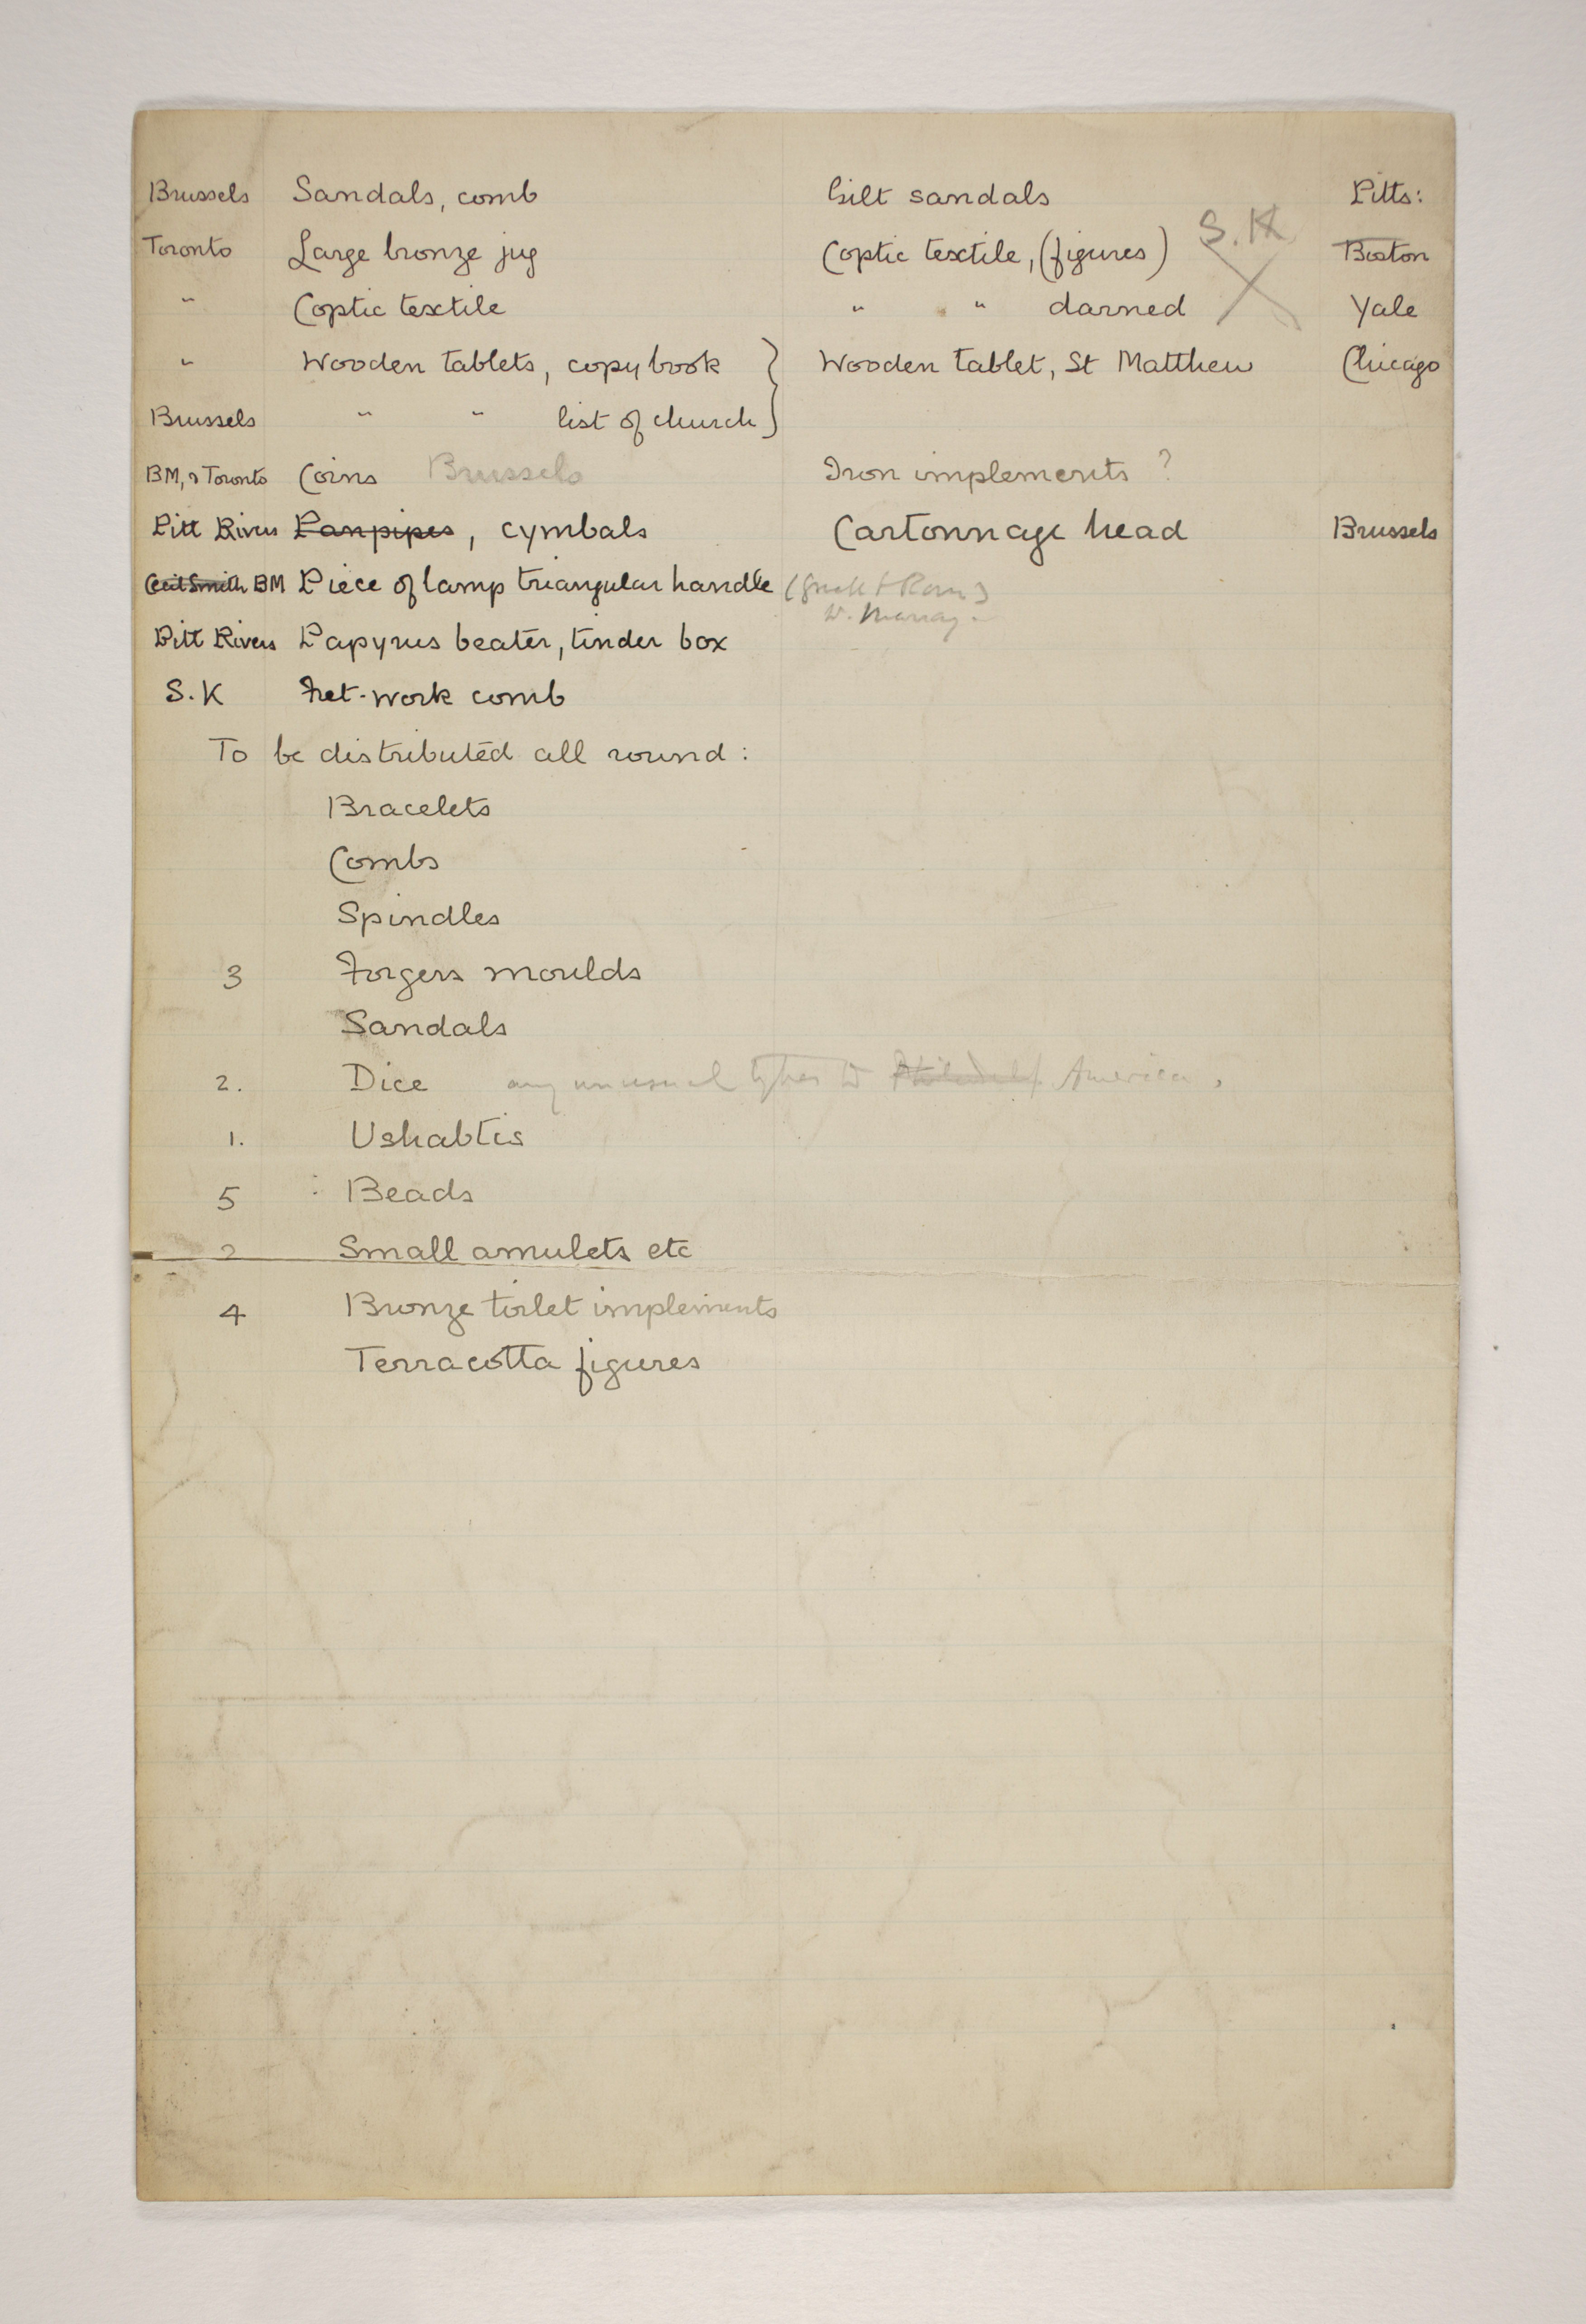 1902-03 Abydos Multiple institution list PMA/WFP1/D/11/1.2